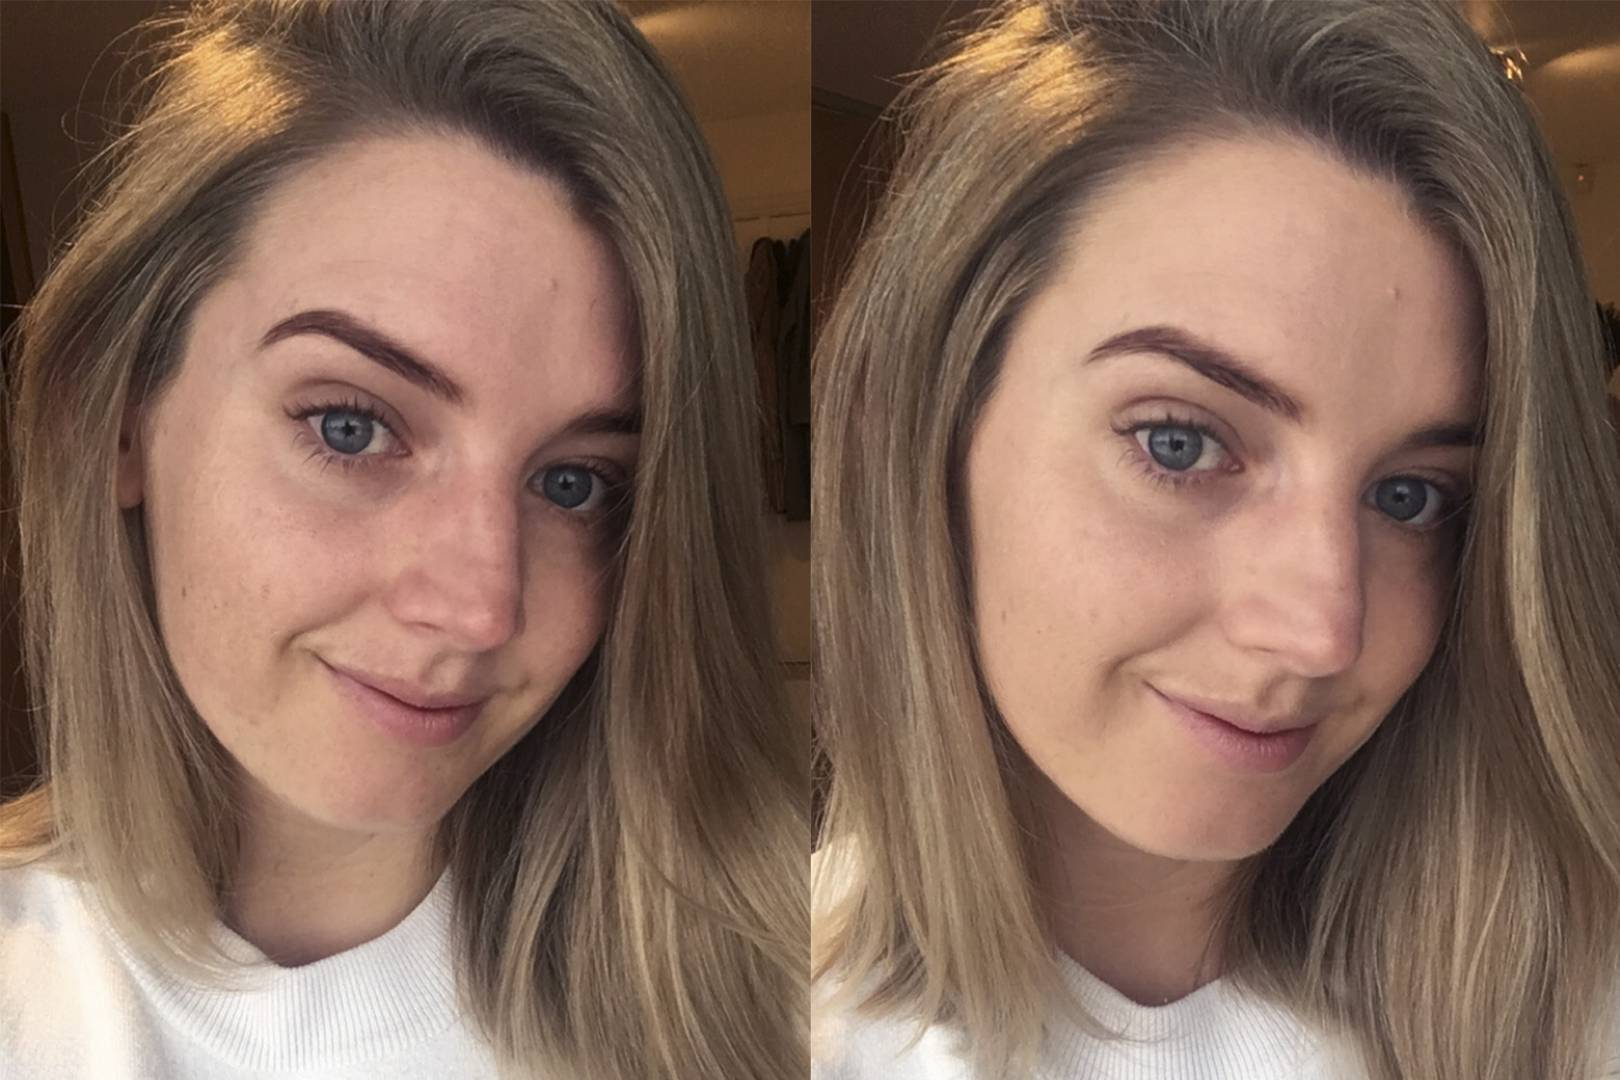 Glossier Perfecting Skin Tint Review Unfiltered Before And After Pictures Of The New Formula Glamour Uk